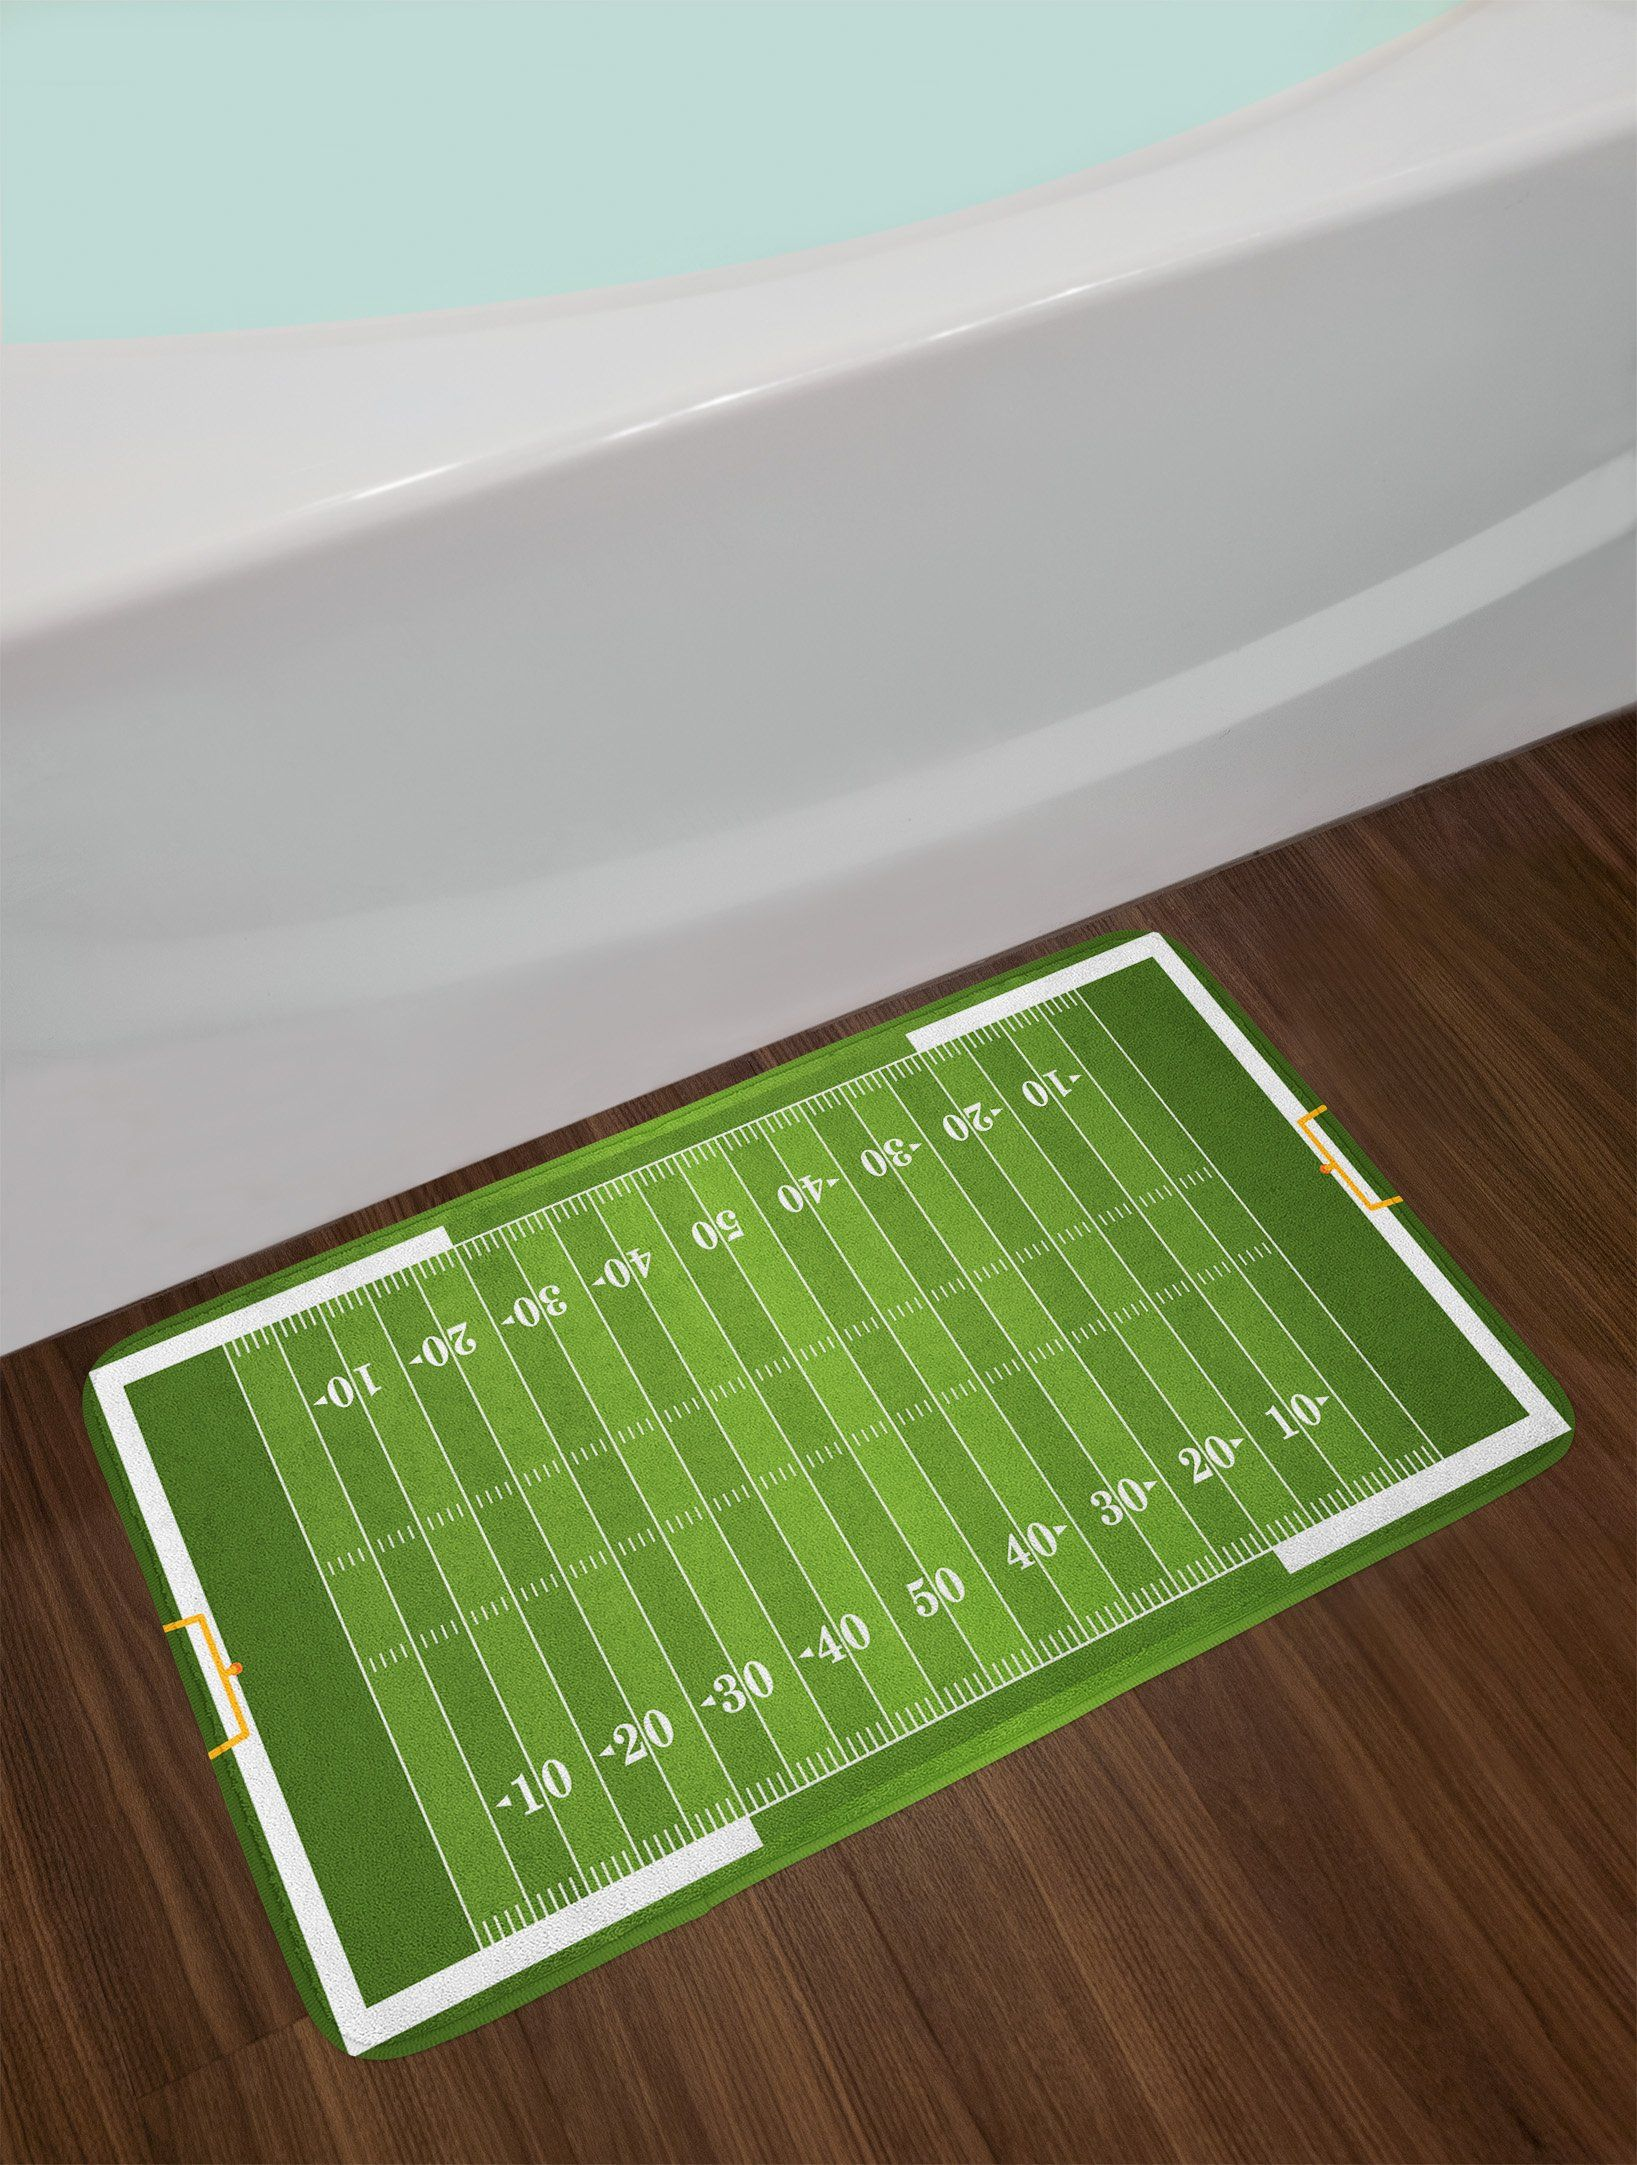 Football Bath Mat By Lunarable Sports Field In Green Gridiron Yard Competitive Games College Teamwork Superbowl Plush Superbowl Game Green Gridiron Super Bowl